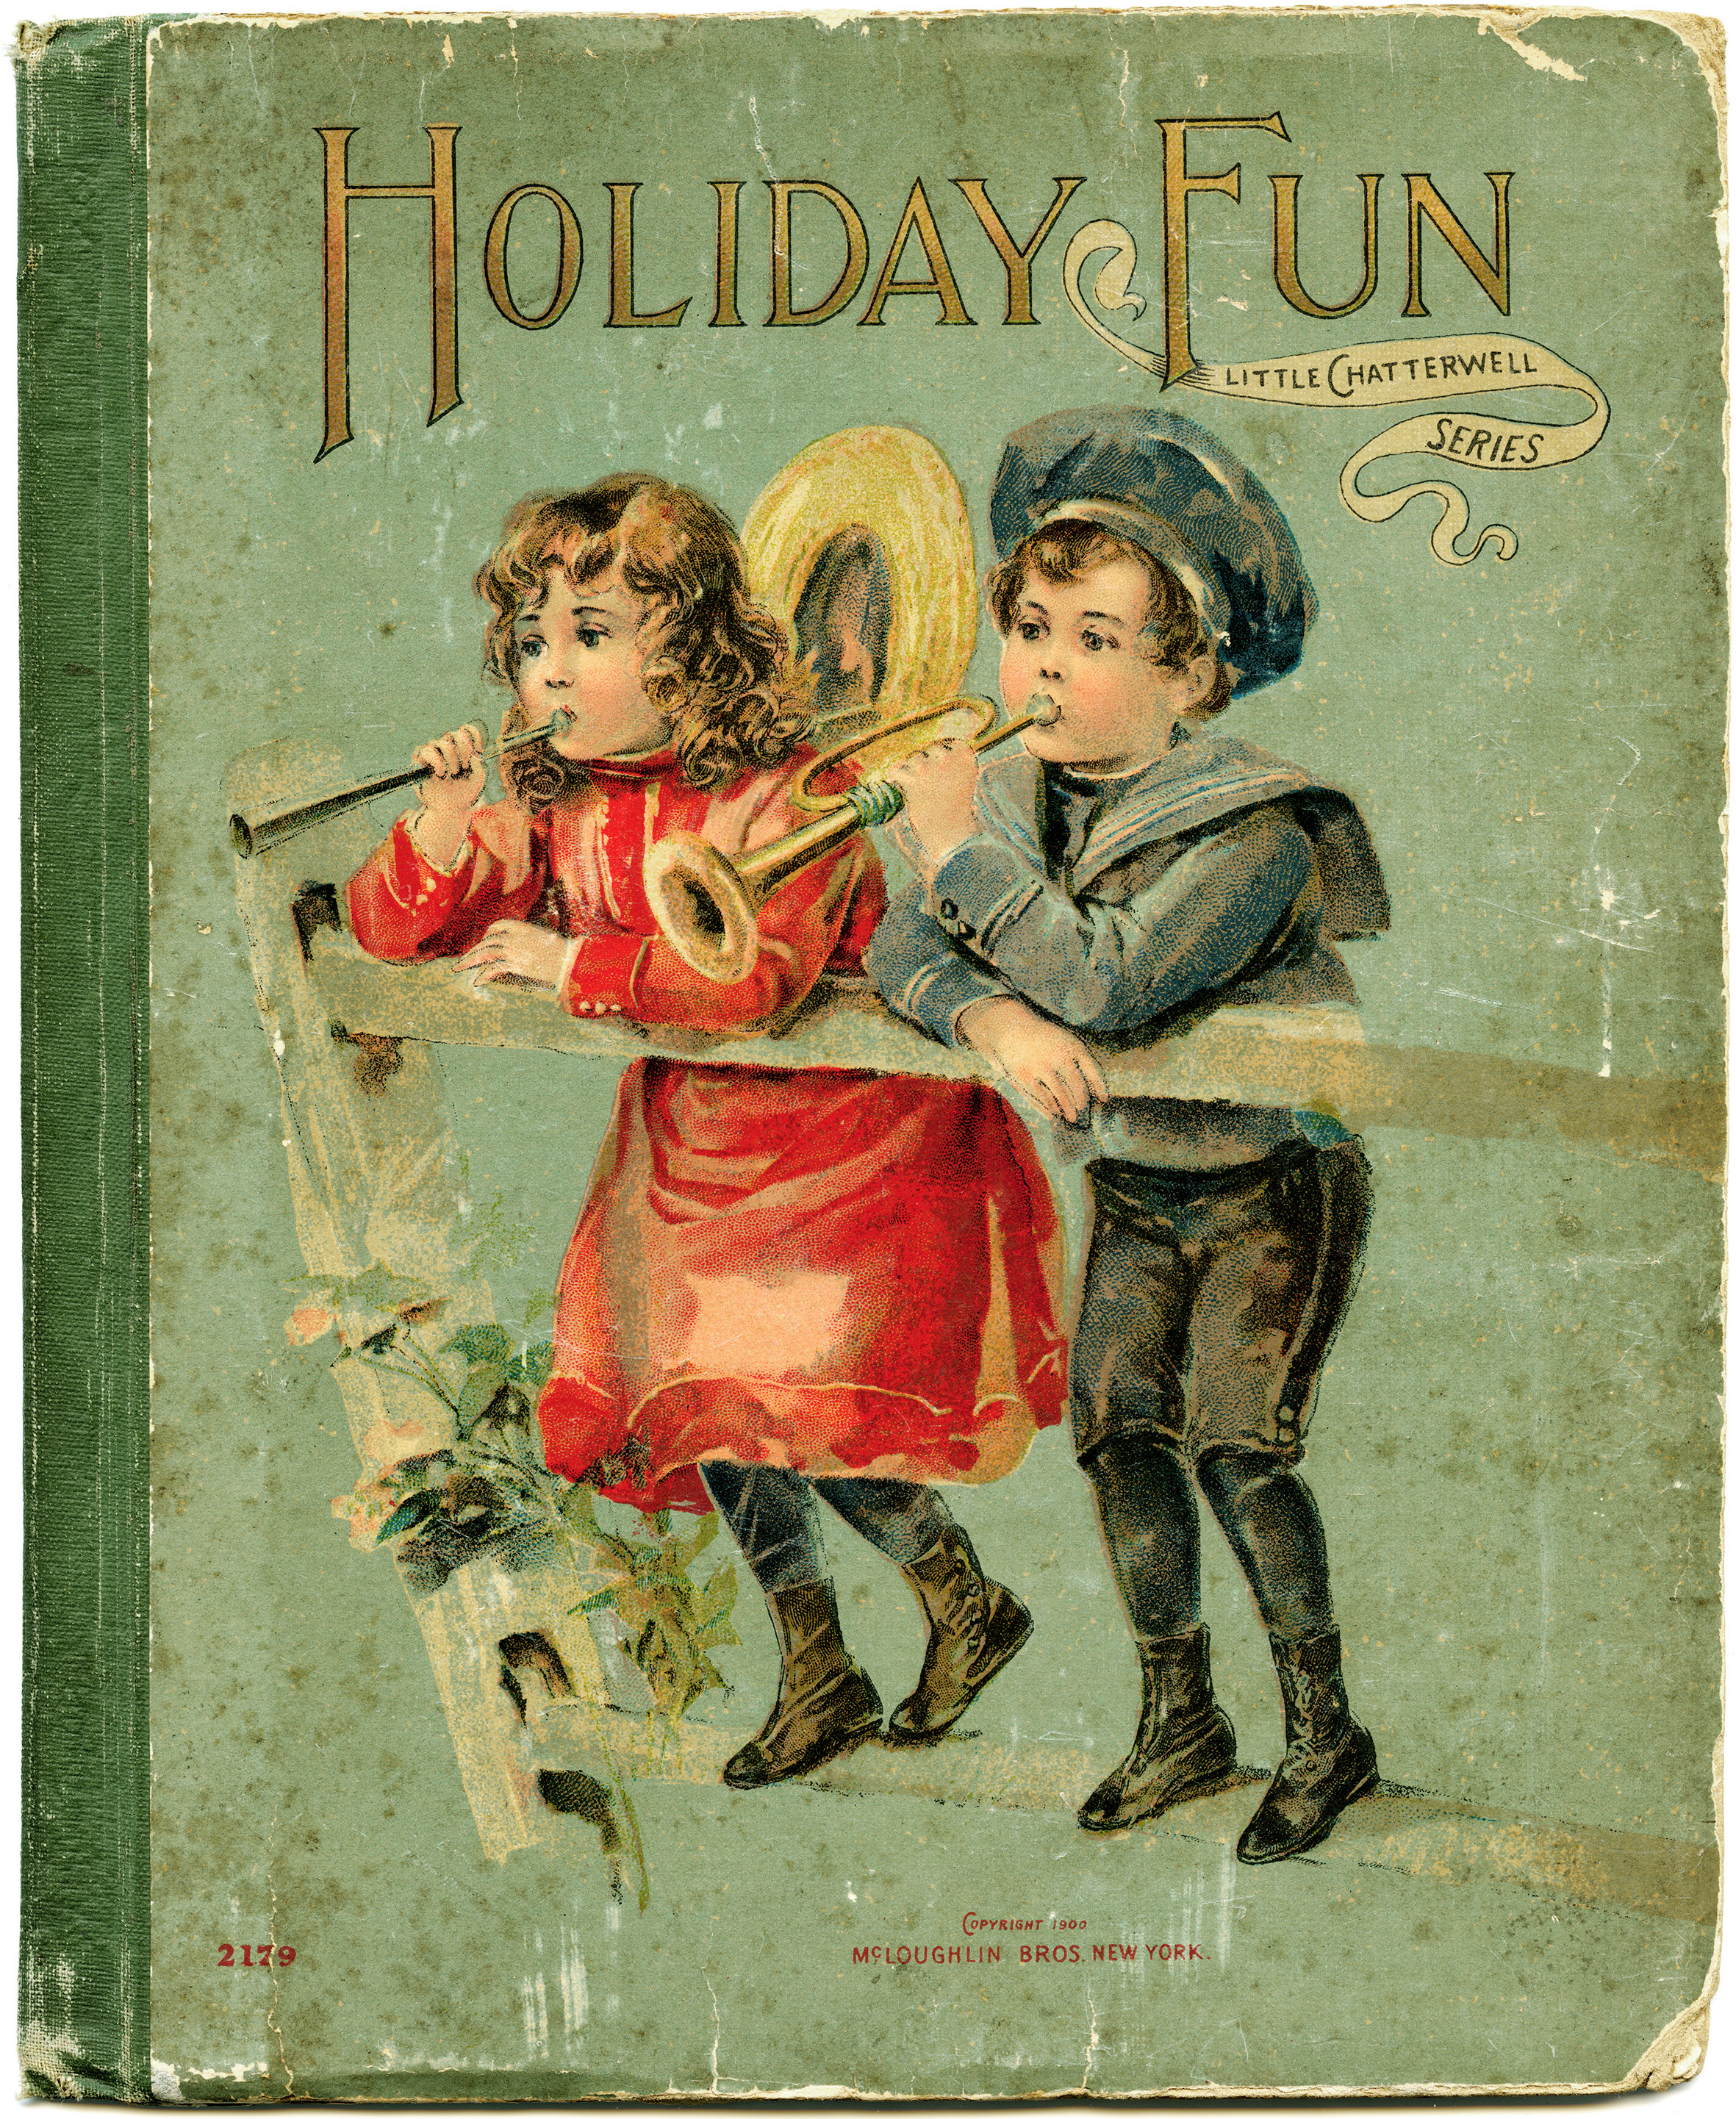 Children S Book Covers To Print : Holiday fun cover oage old design shop